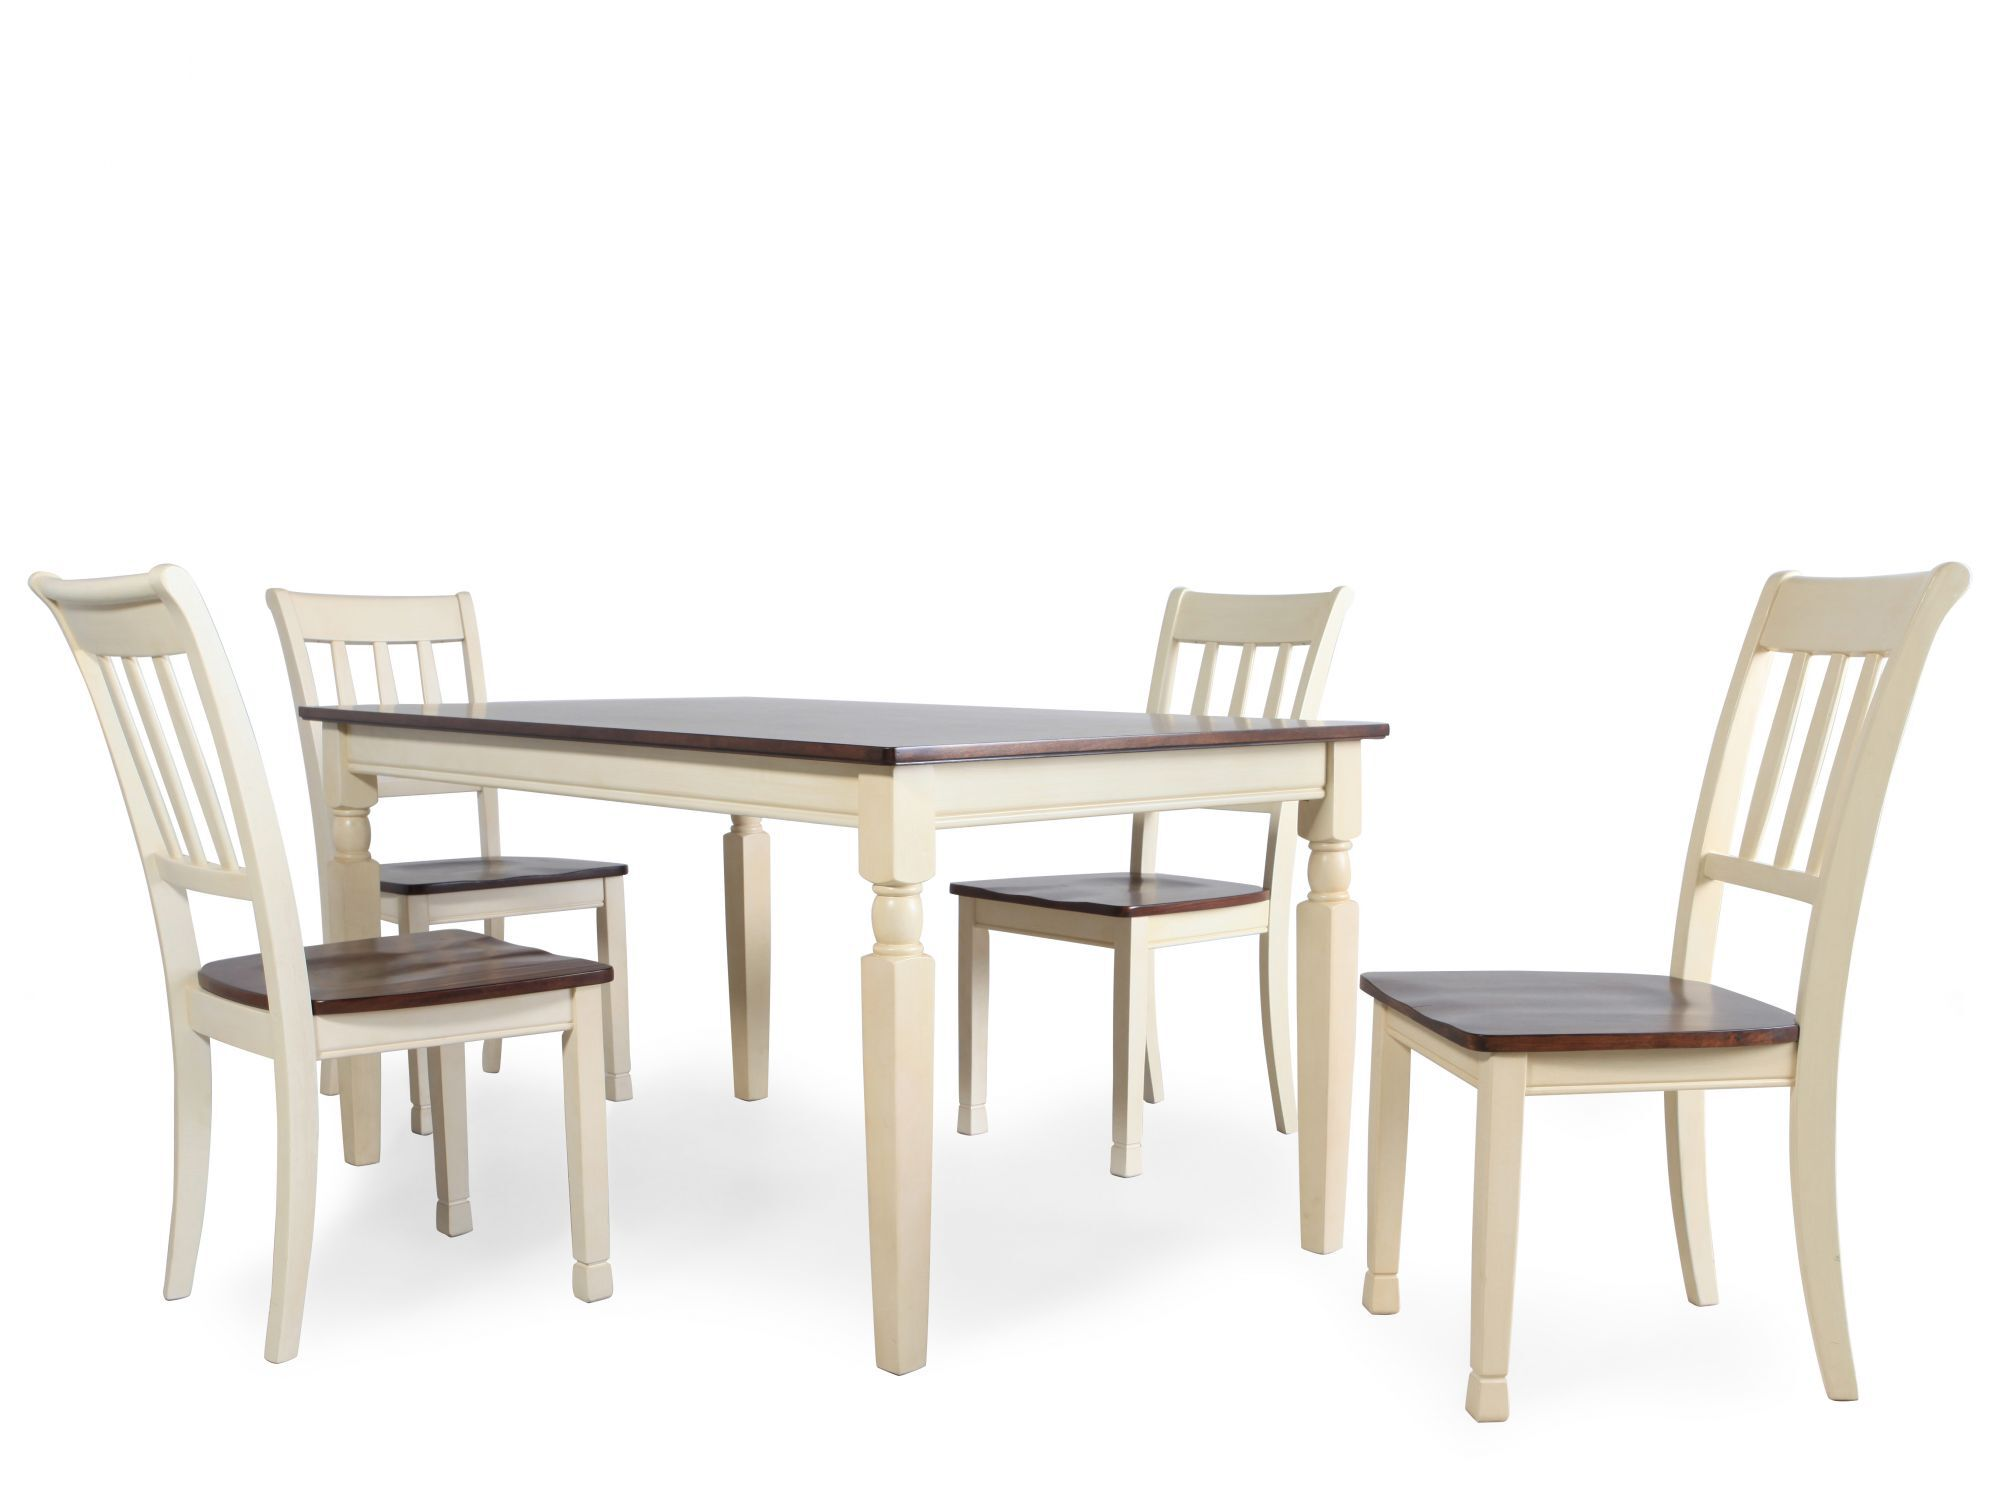 Five-Piece Cottage Dining Set in Buttermilk | Mathis ...